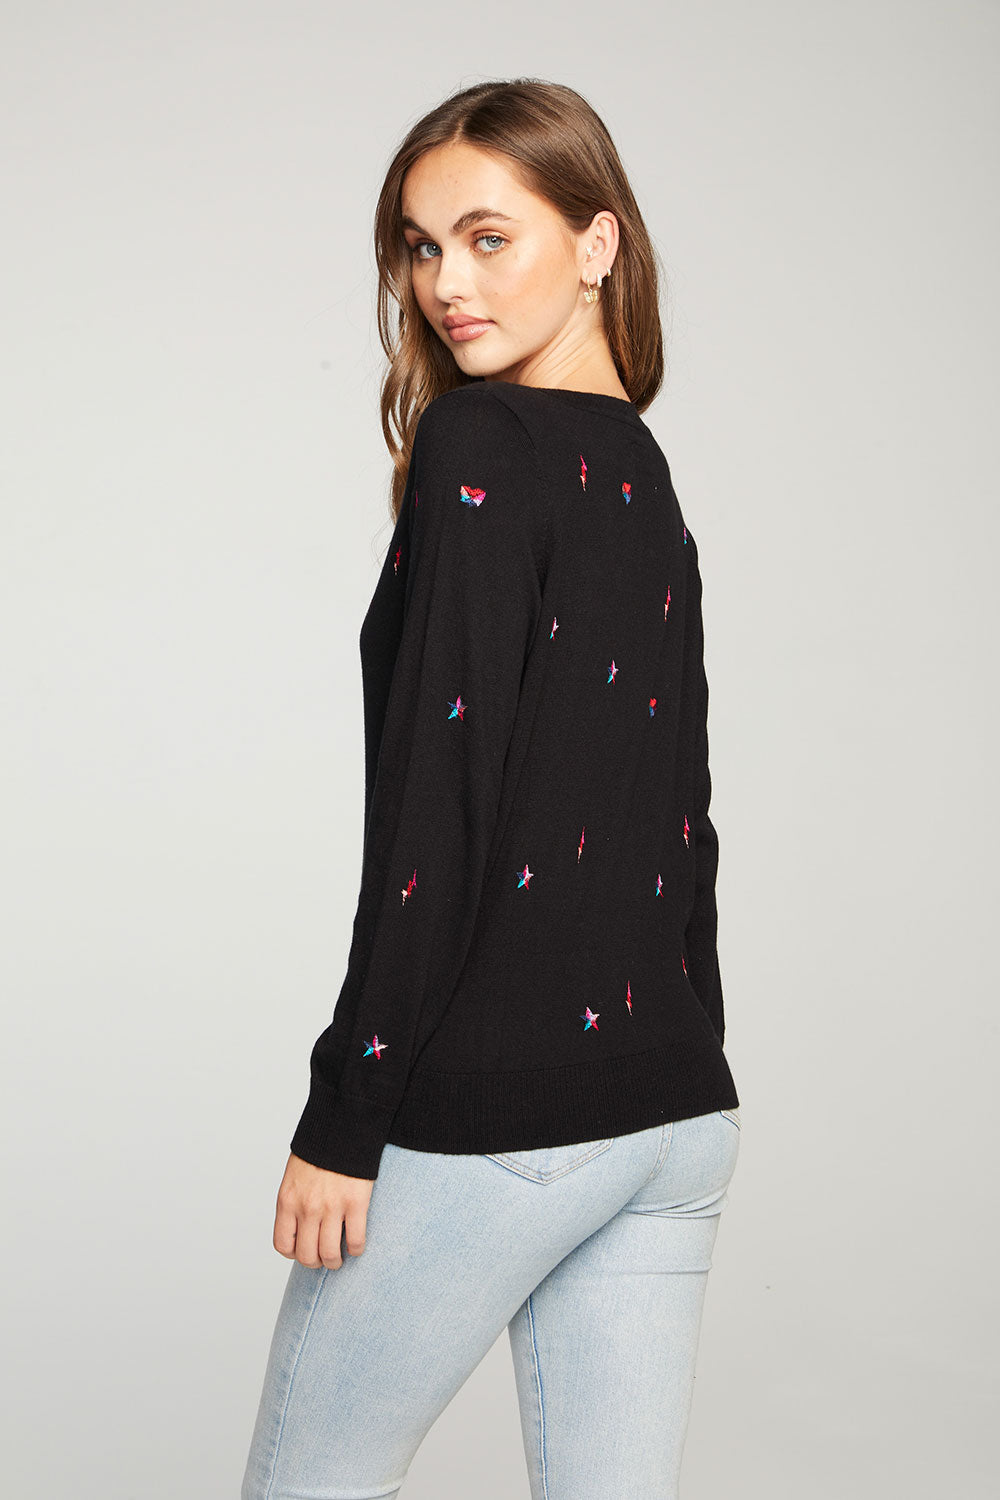 Rainbow Days WOMENS - chaserbrand